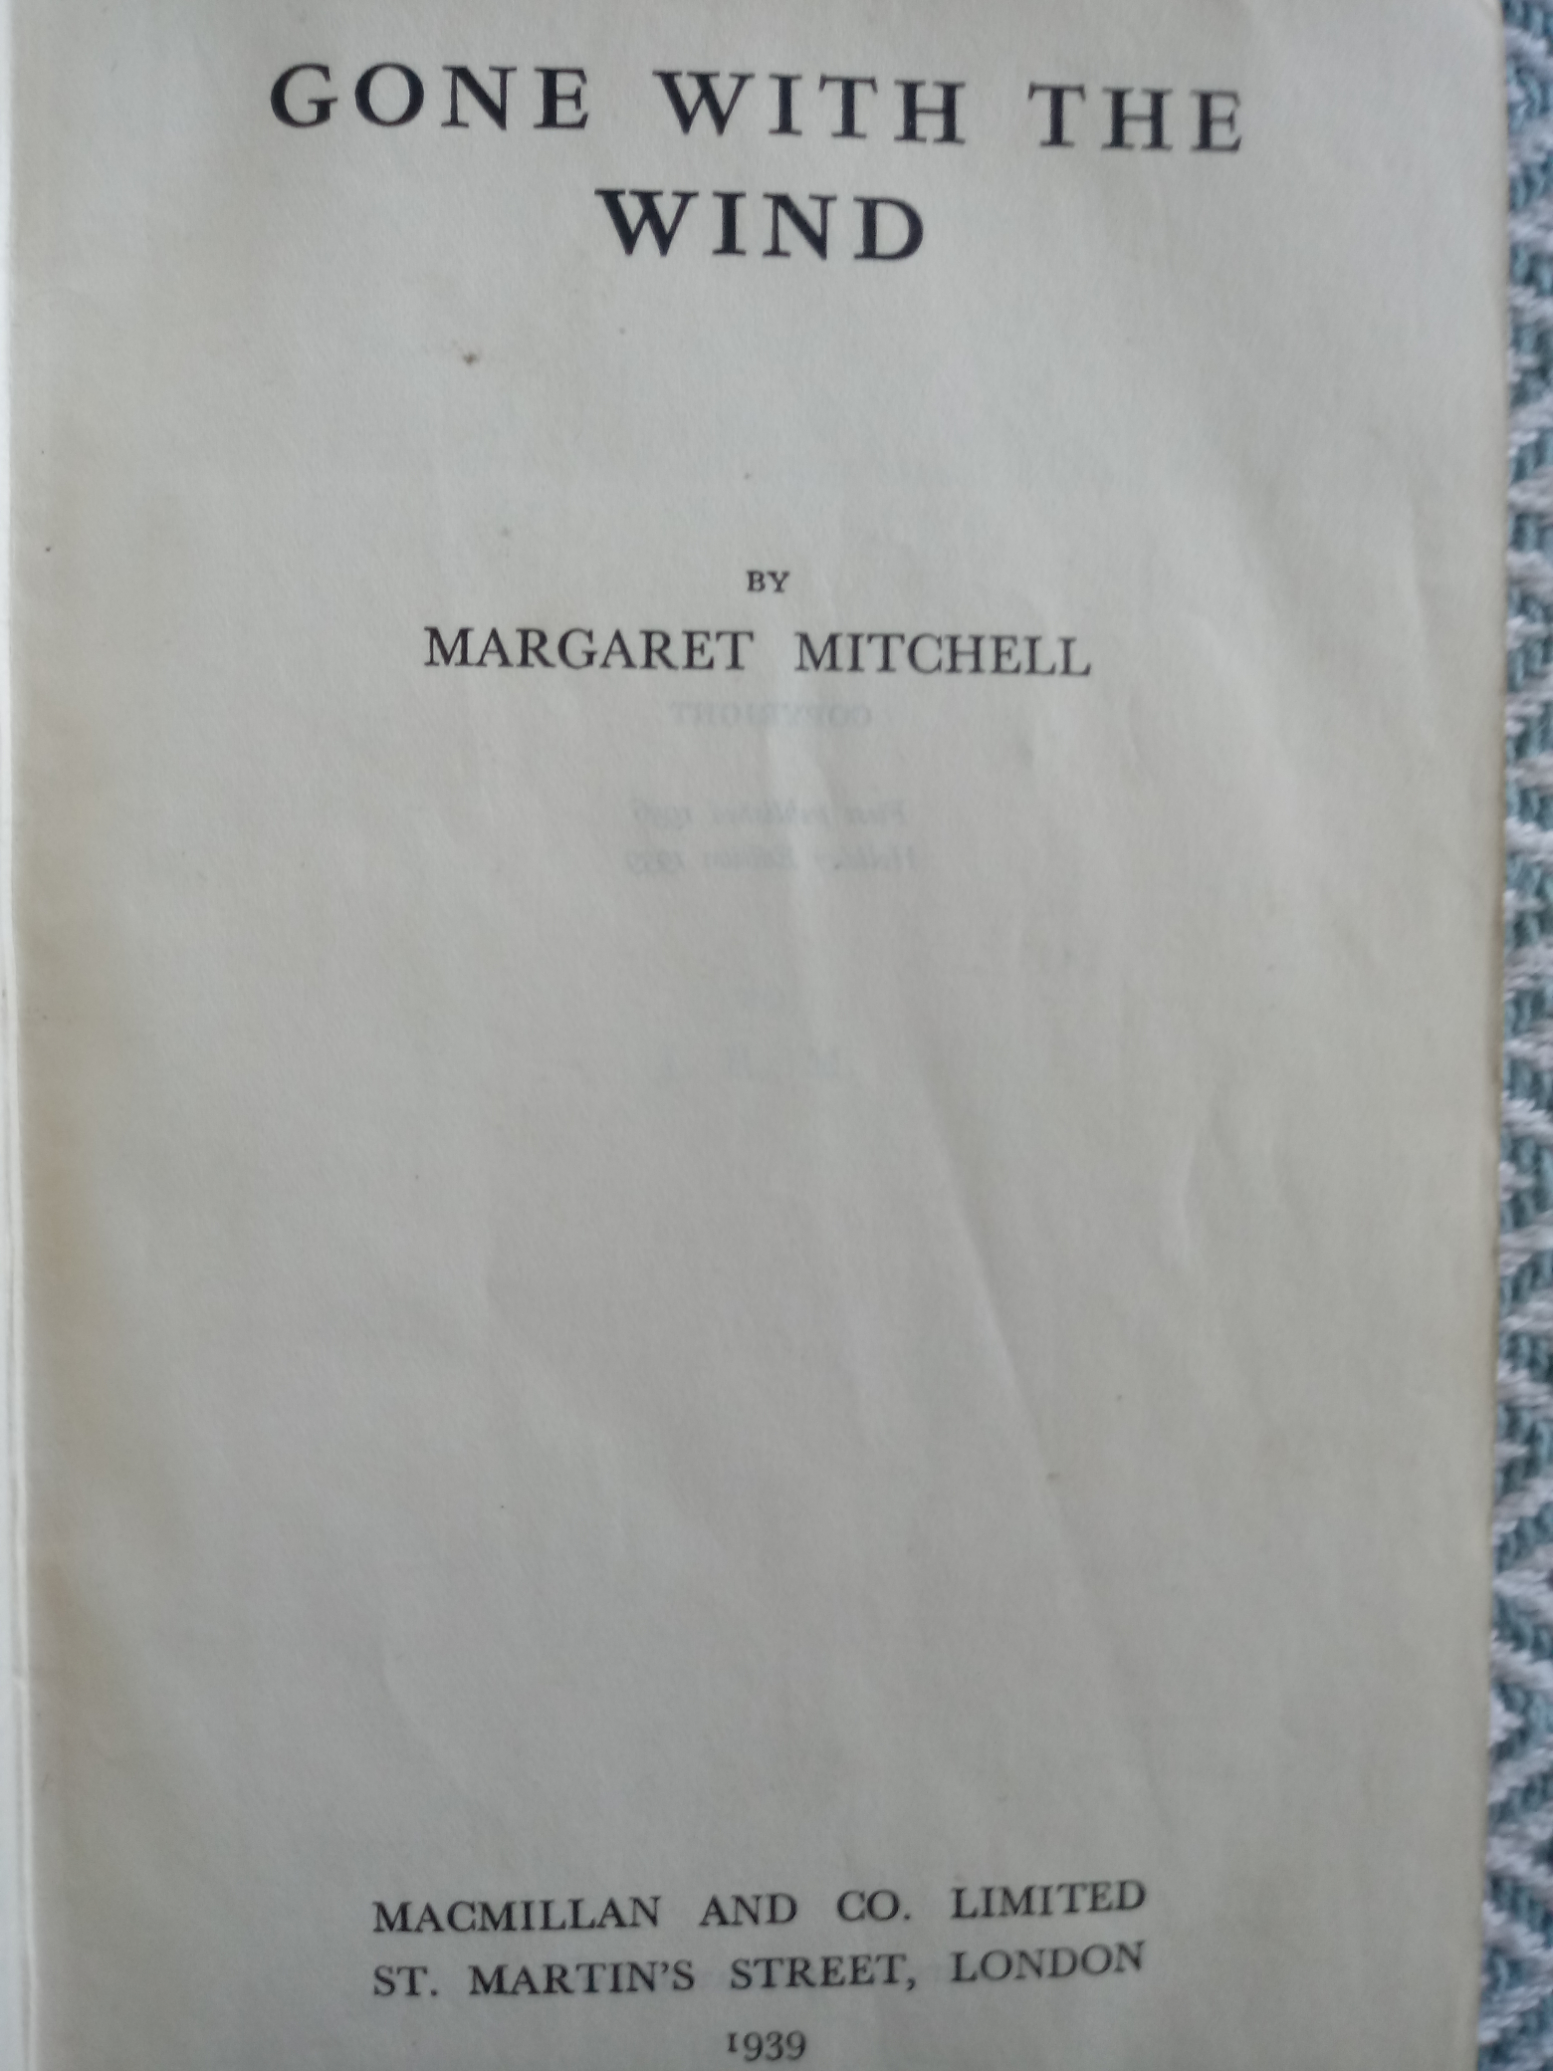 Gone With The Wind hardback book by Margaret Mitchell Published by Macmillan & Co 1939. 795 pages. - Image 2 of 2